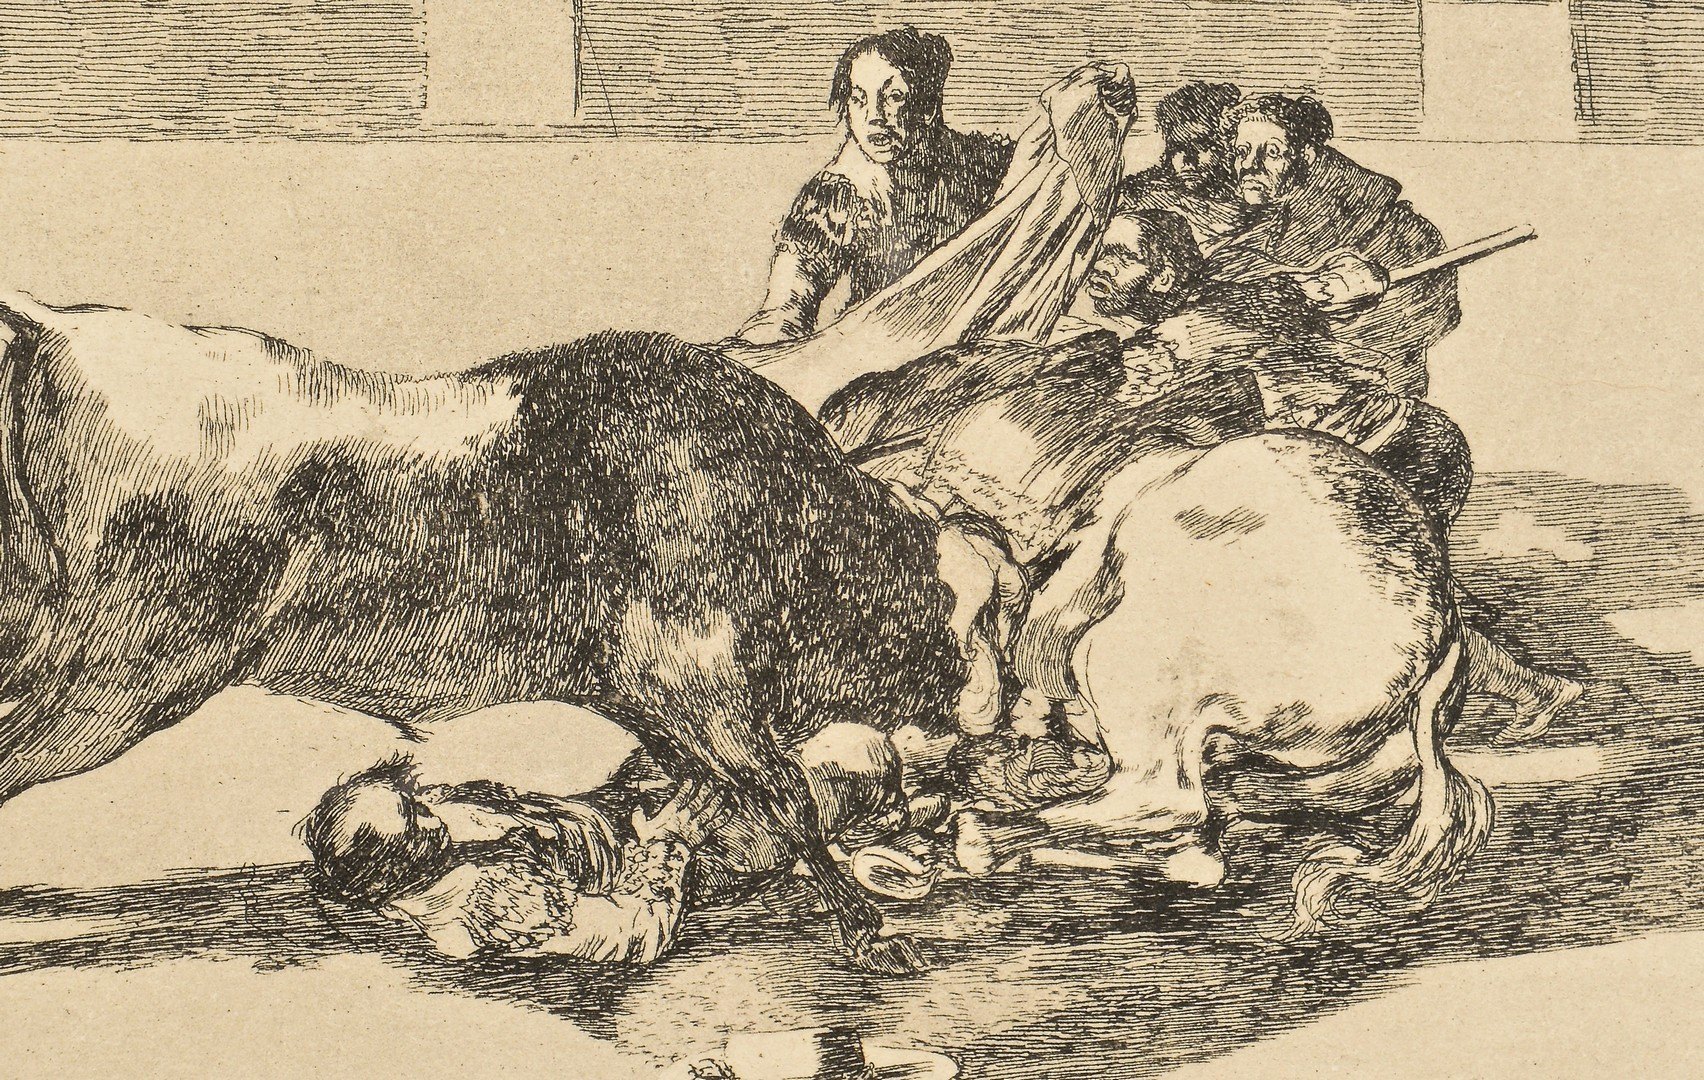 Lot 192: Goya Etching #26 from La Tauromaquia Series